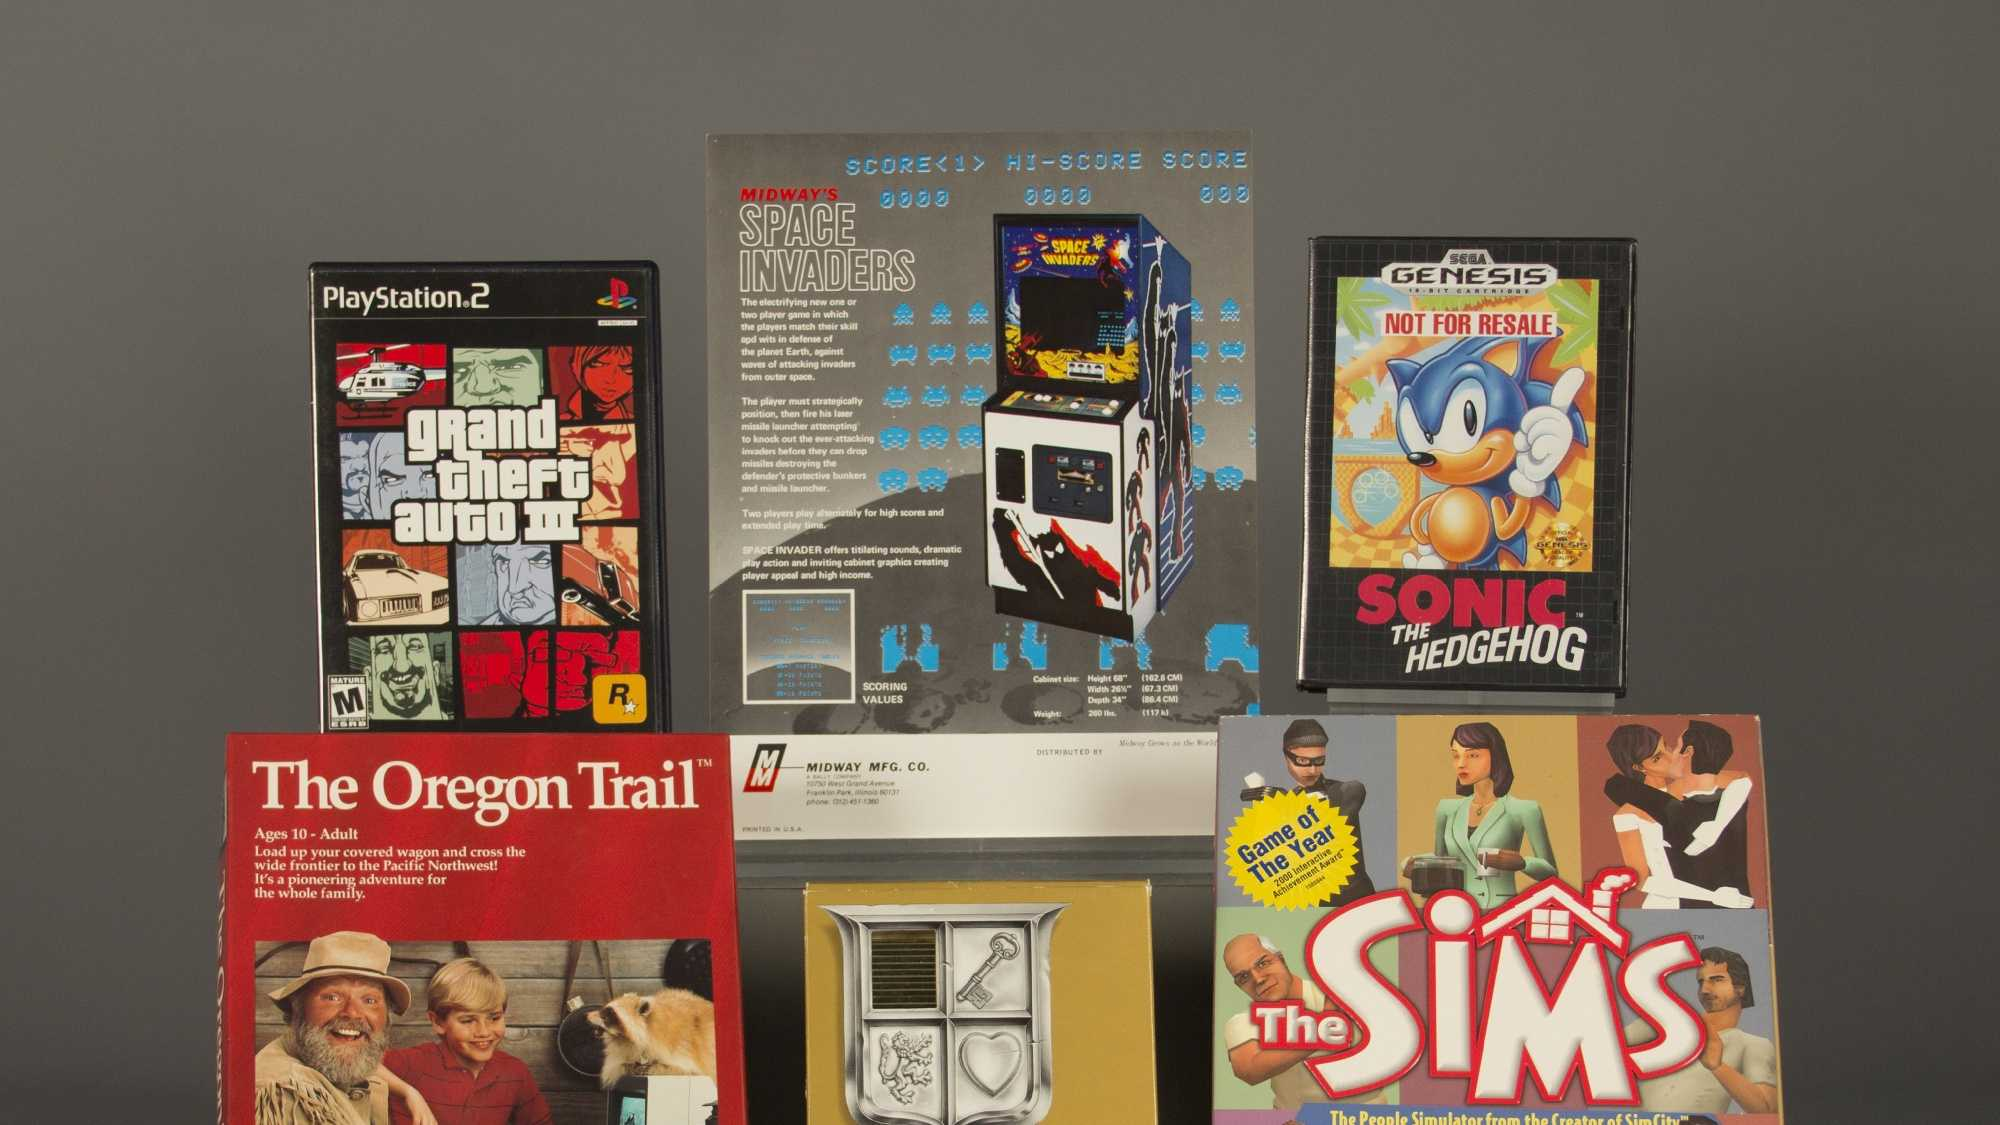 "In this April 21, 2016 photo provided by The Strong museum in Rochester, N.Y., the 2016 inductees to the World Video Game Hall of Fame are displayed. From top left, clockwise, are ""Grand Theft Auto III,"" ""Space Invaders,"" ""Sonic the Hedgehog,"" ""The Sims,"" ""The Legend of Zelda,"" and ""The Oregon Trail."""